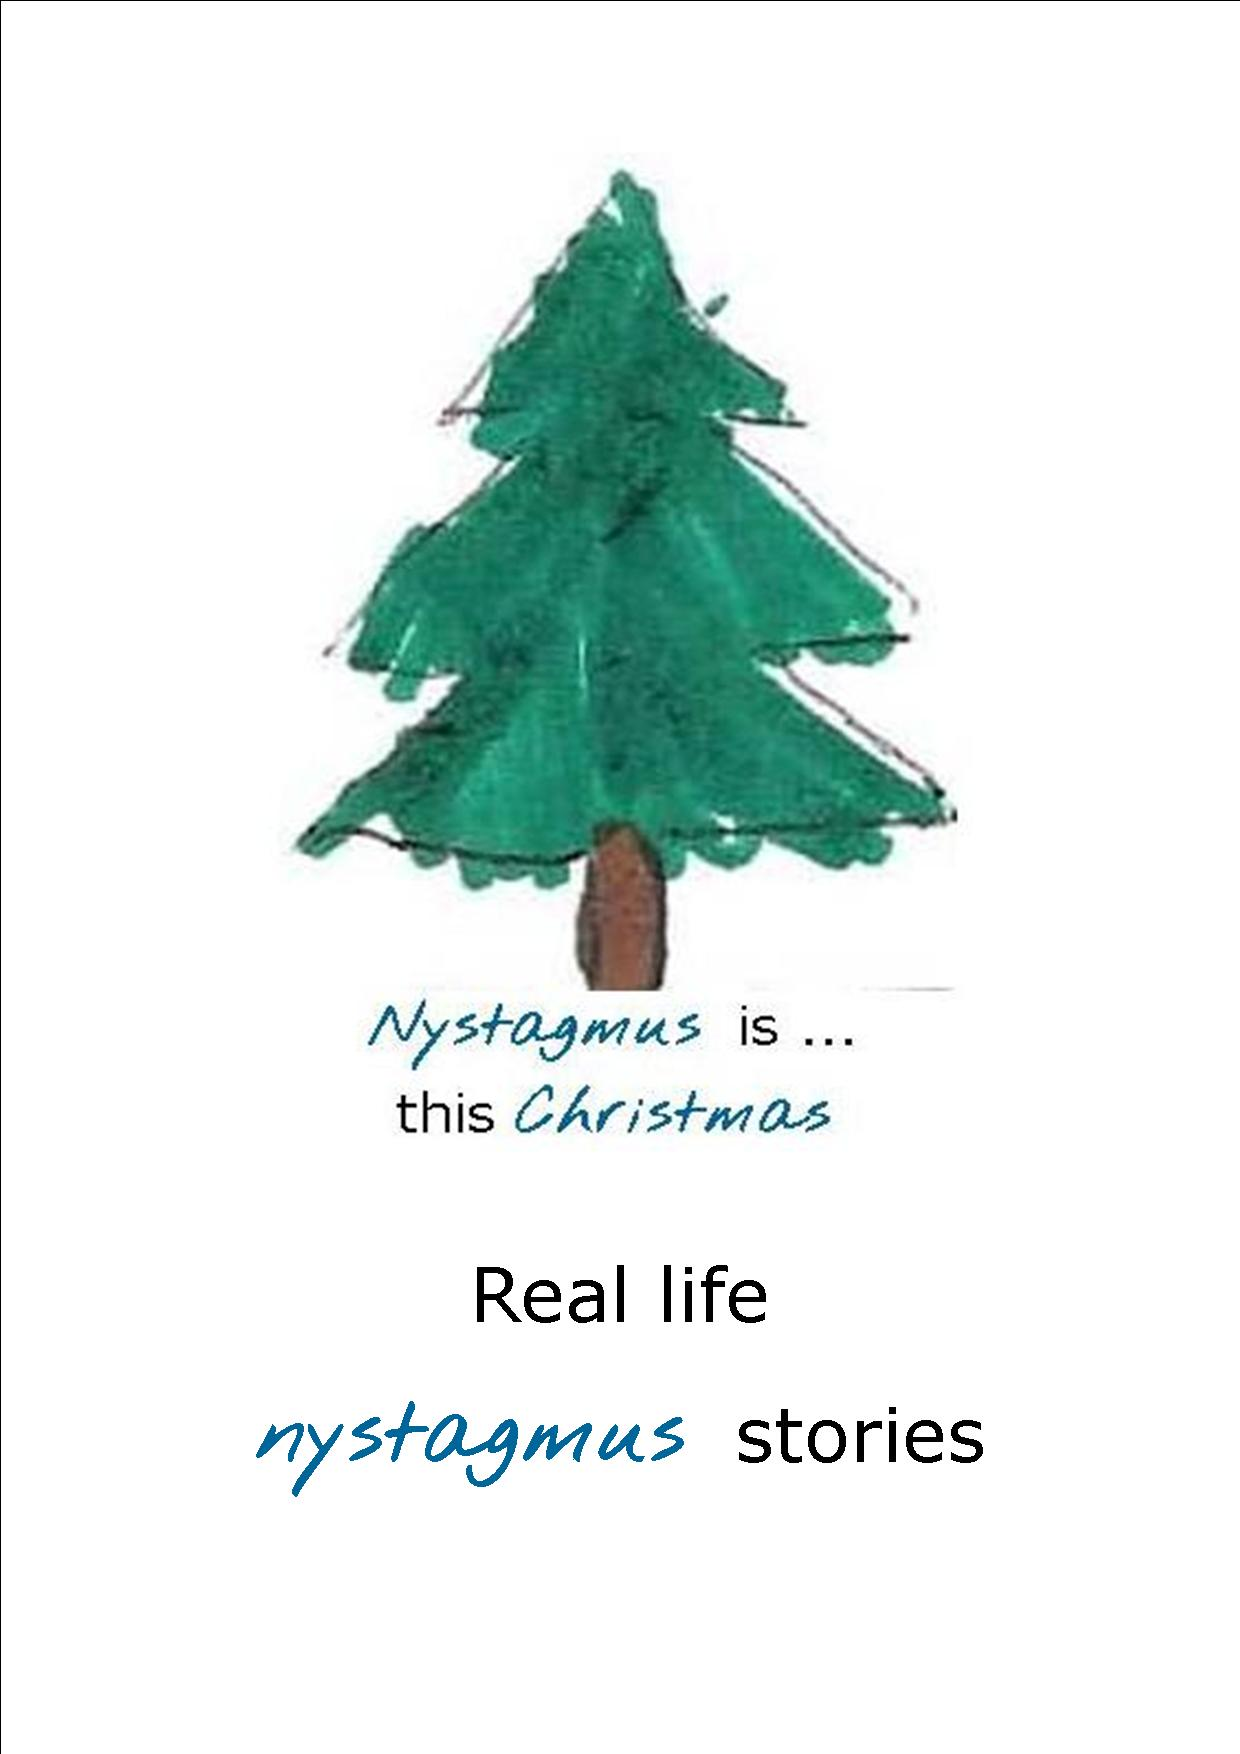 Real life nystagmus stories